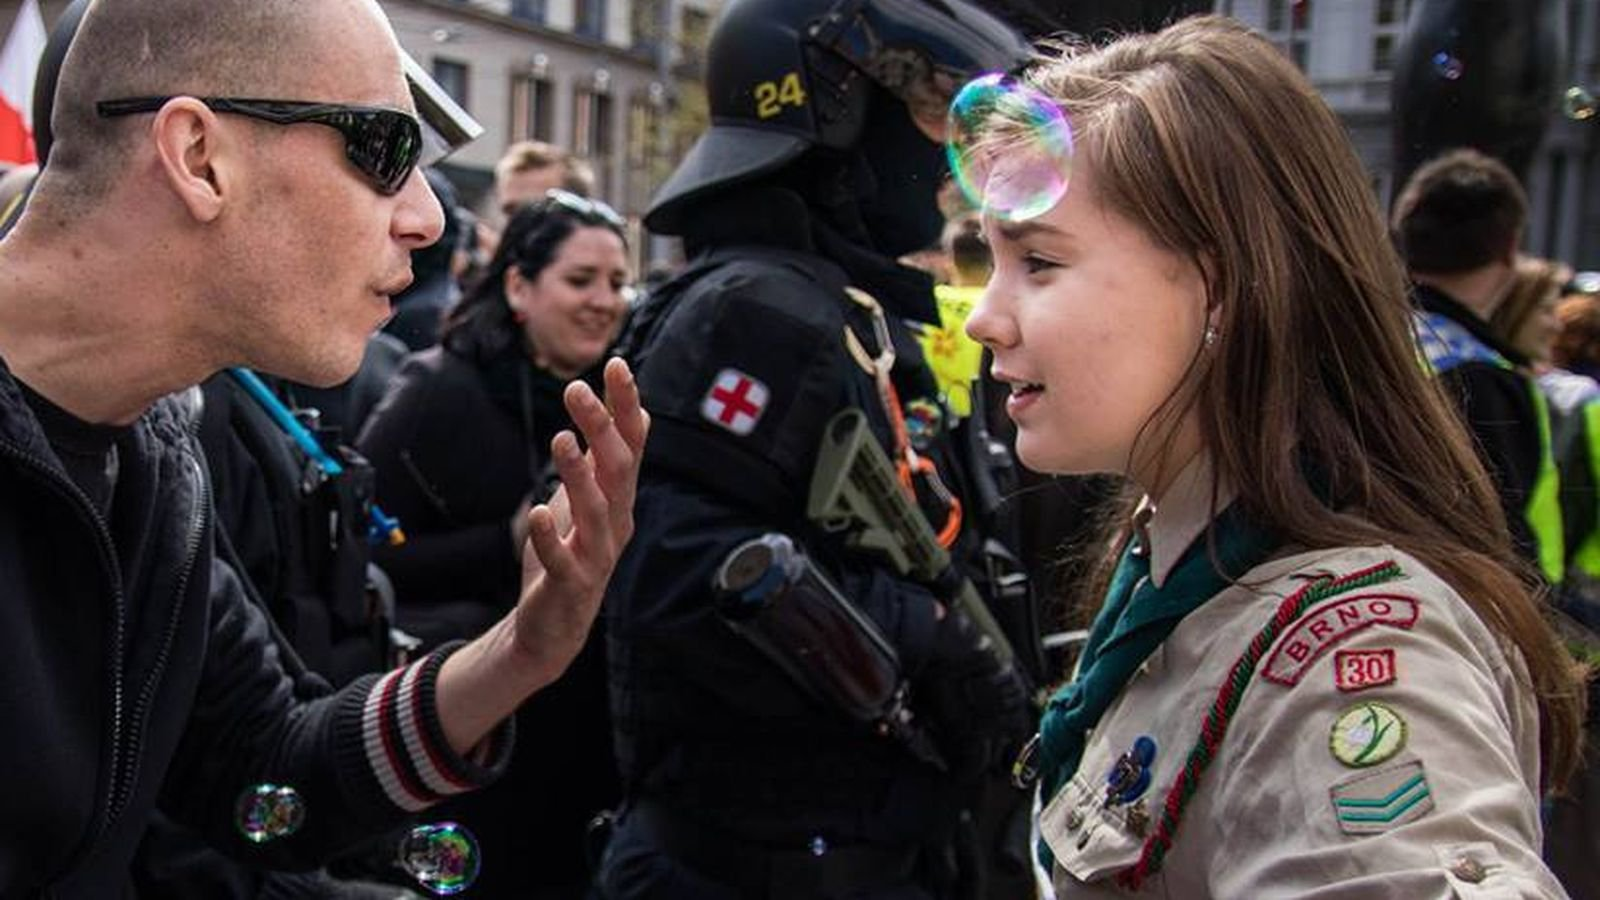 girl scout vs neo nazi